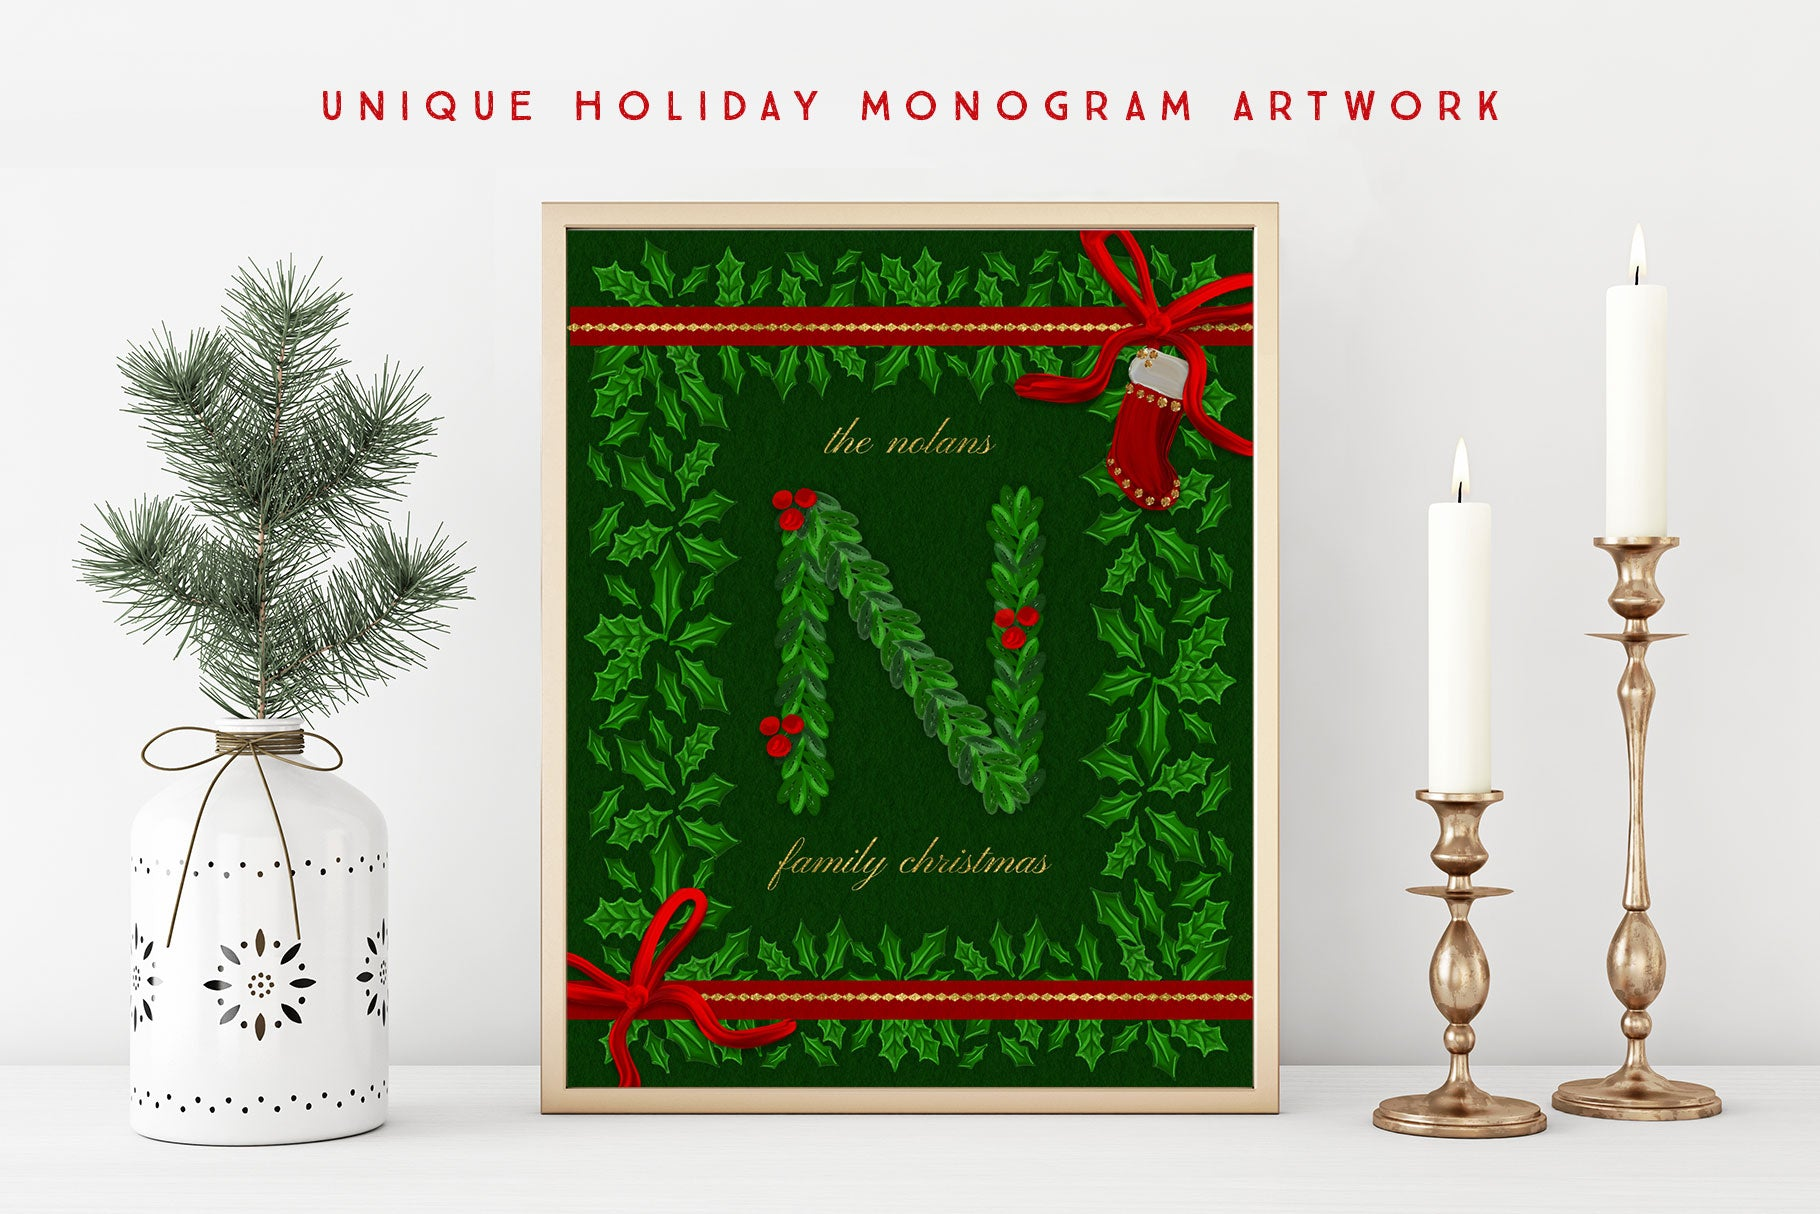 Luxe Christmas & Holiday Greenery Alphabets: create christmas monogram artwork